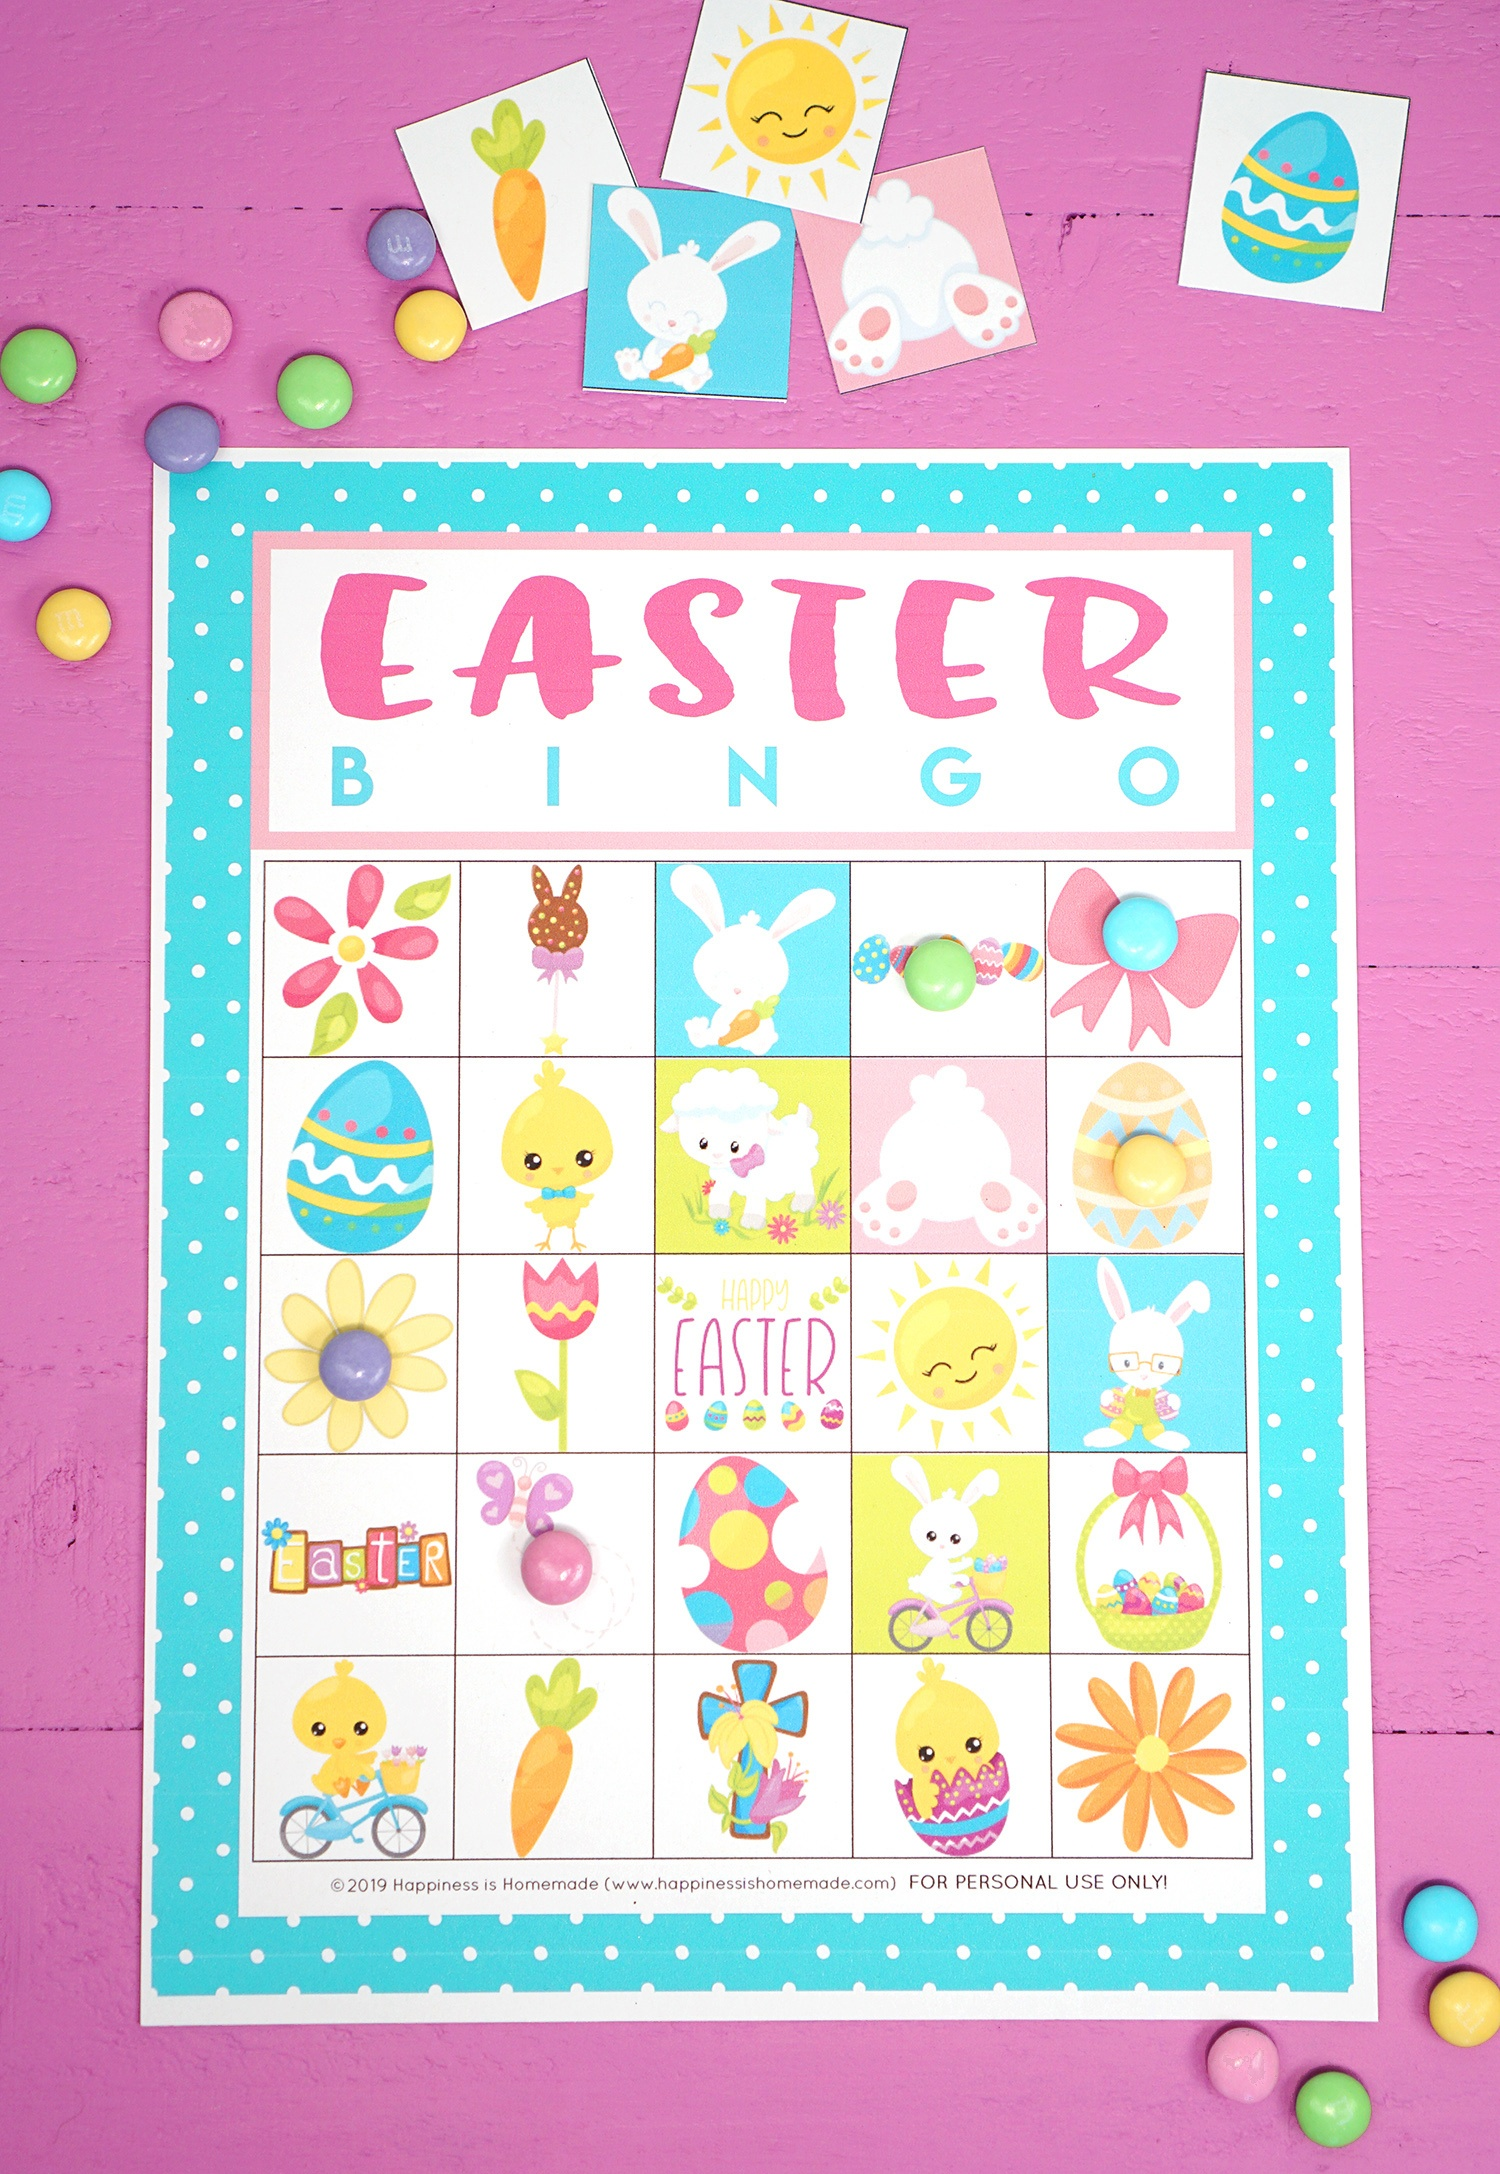 Free Printable Easter Bingo Game Cards - Happiness Is Homemade - Free Bingo Printable